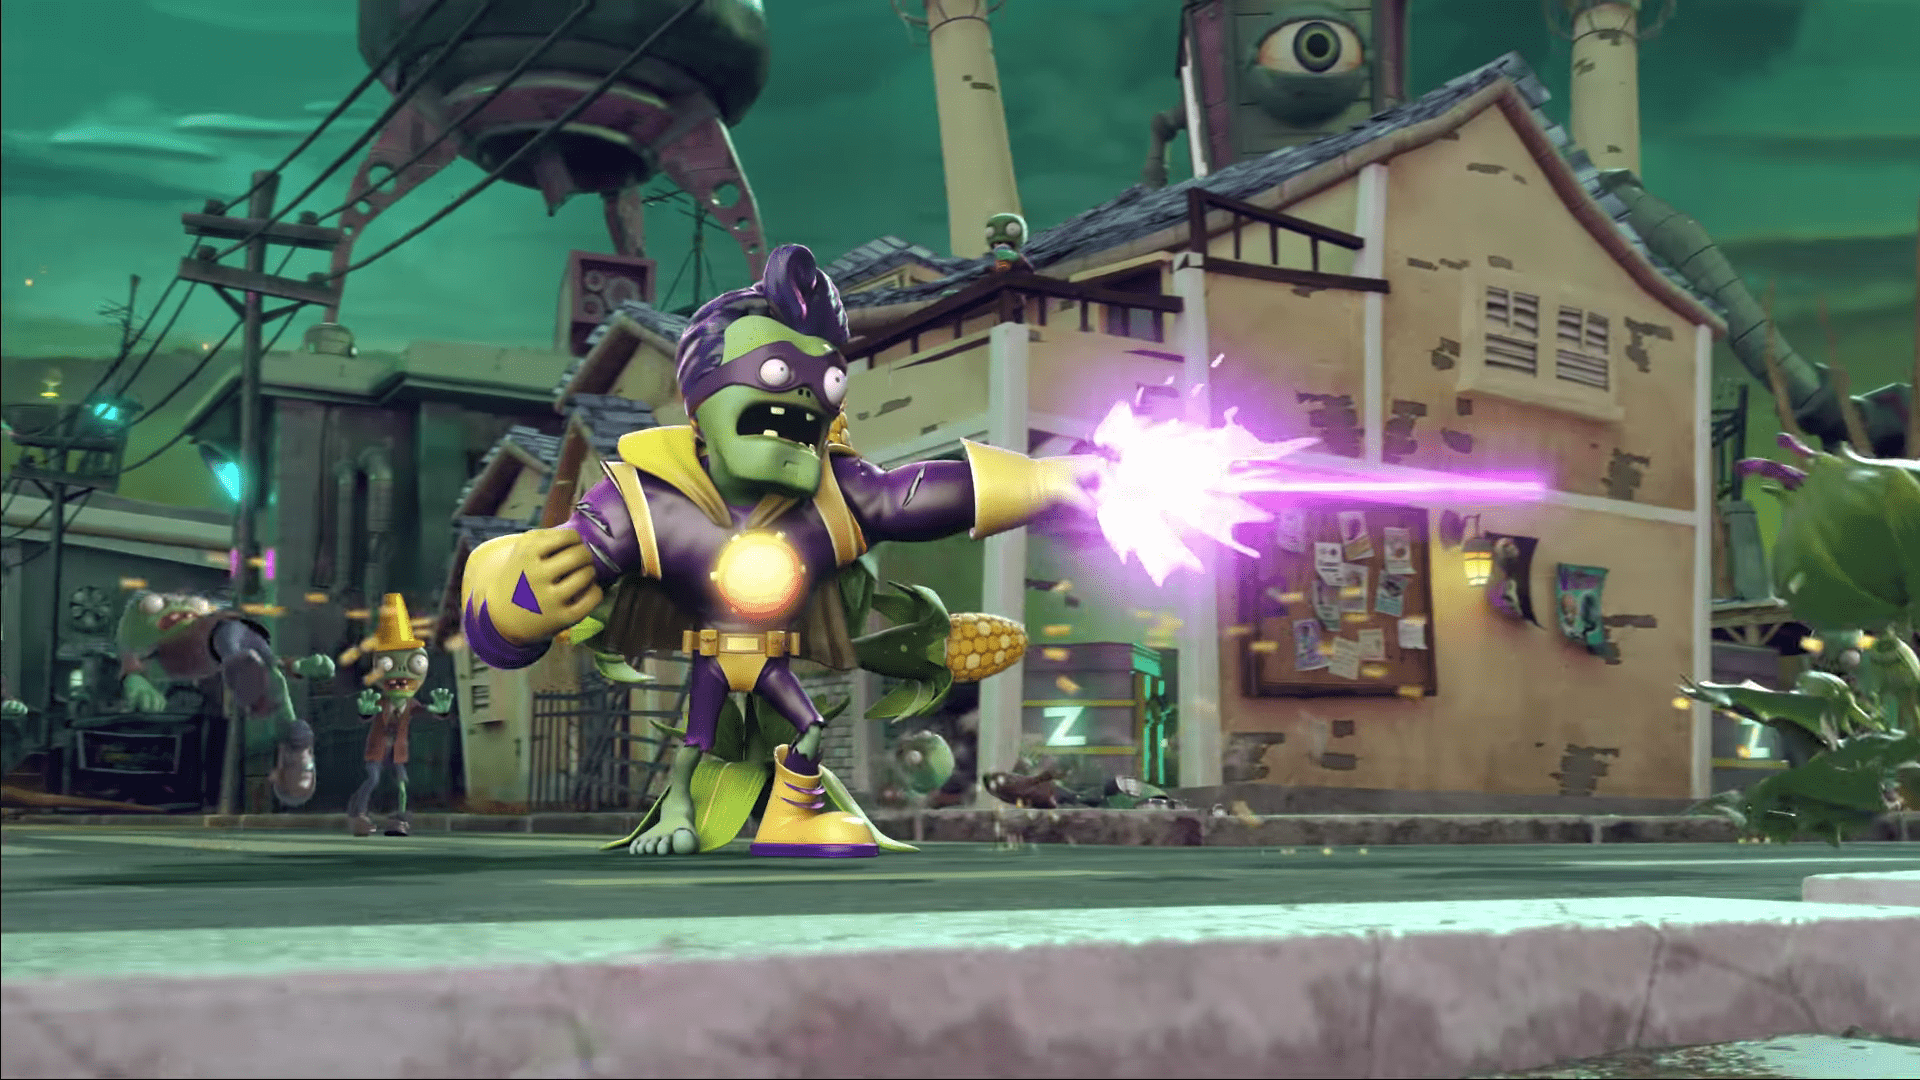 Next Plants Vs  Zombies Game Likely Named 'Battle For Neighborville